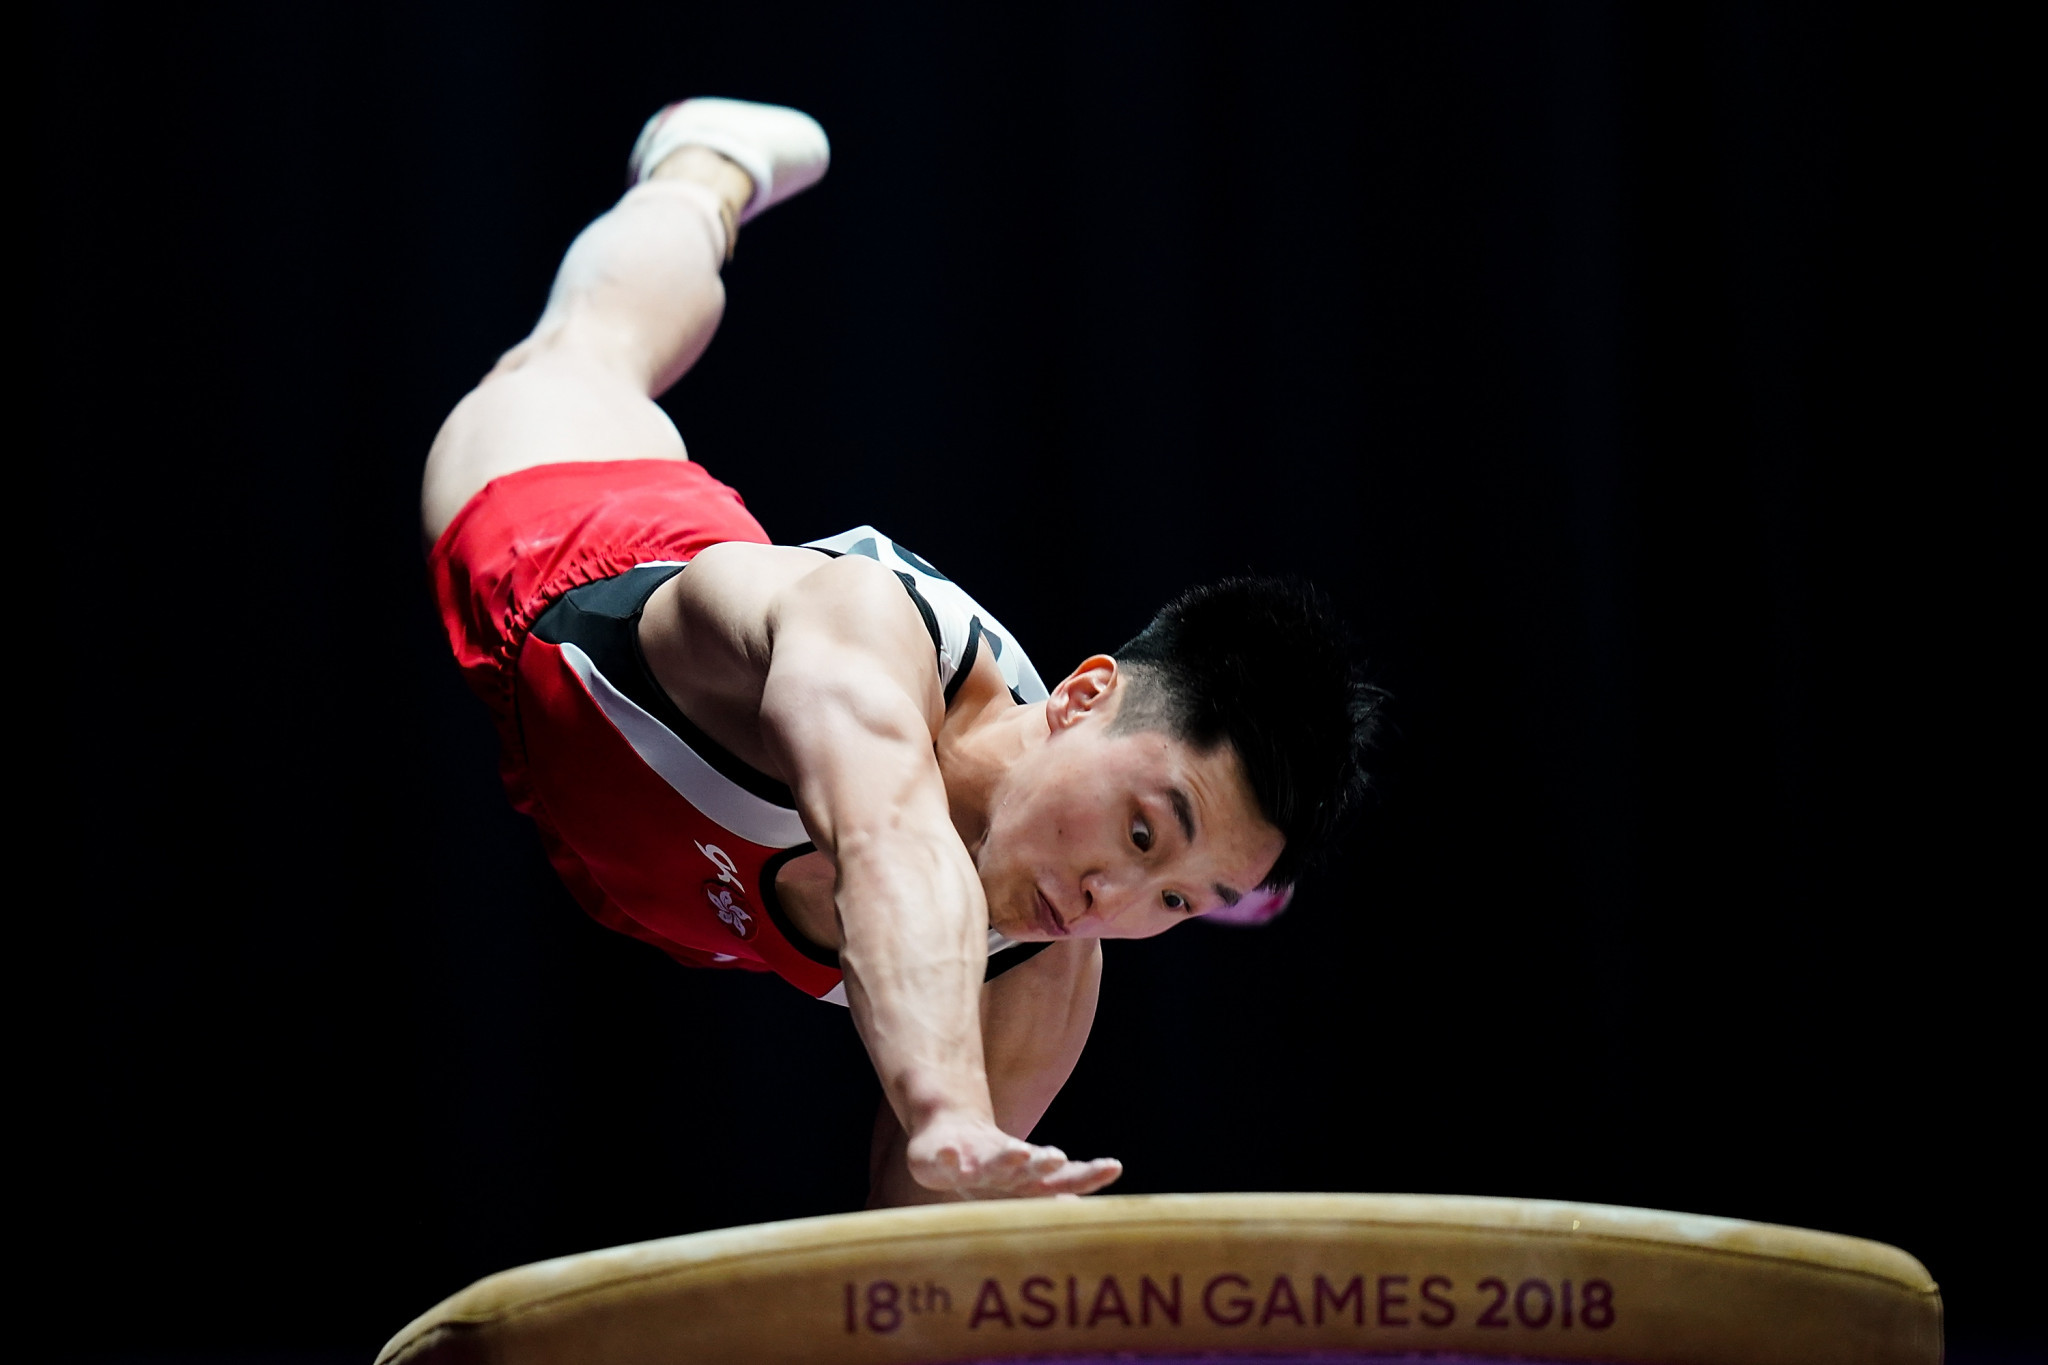 Hong Kong's Asian Games gold medallist Shek Wai Hung won the vault competition ©Getty Images